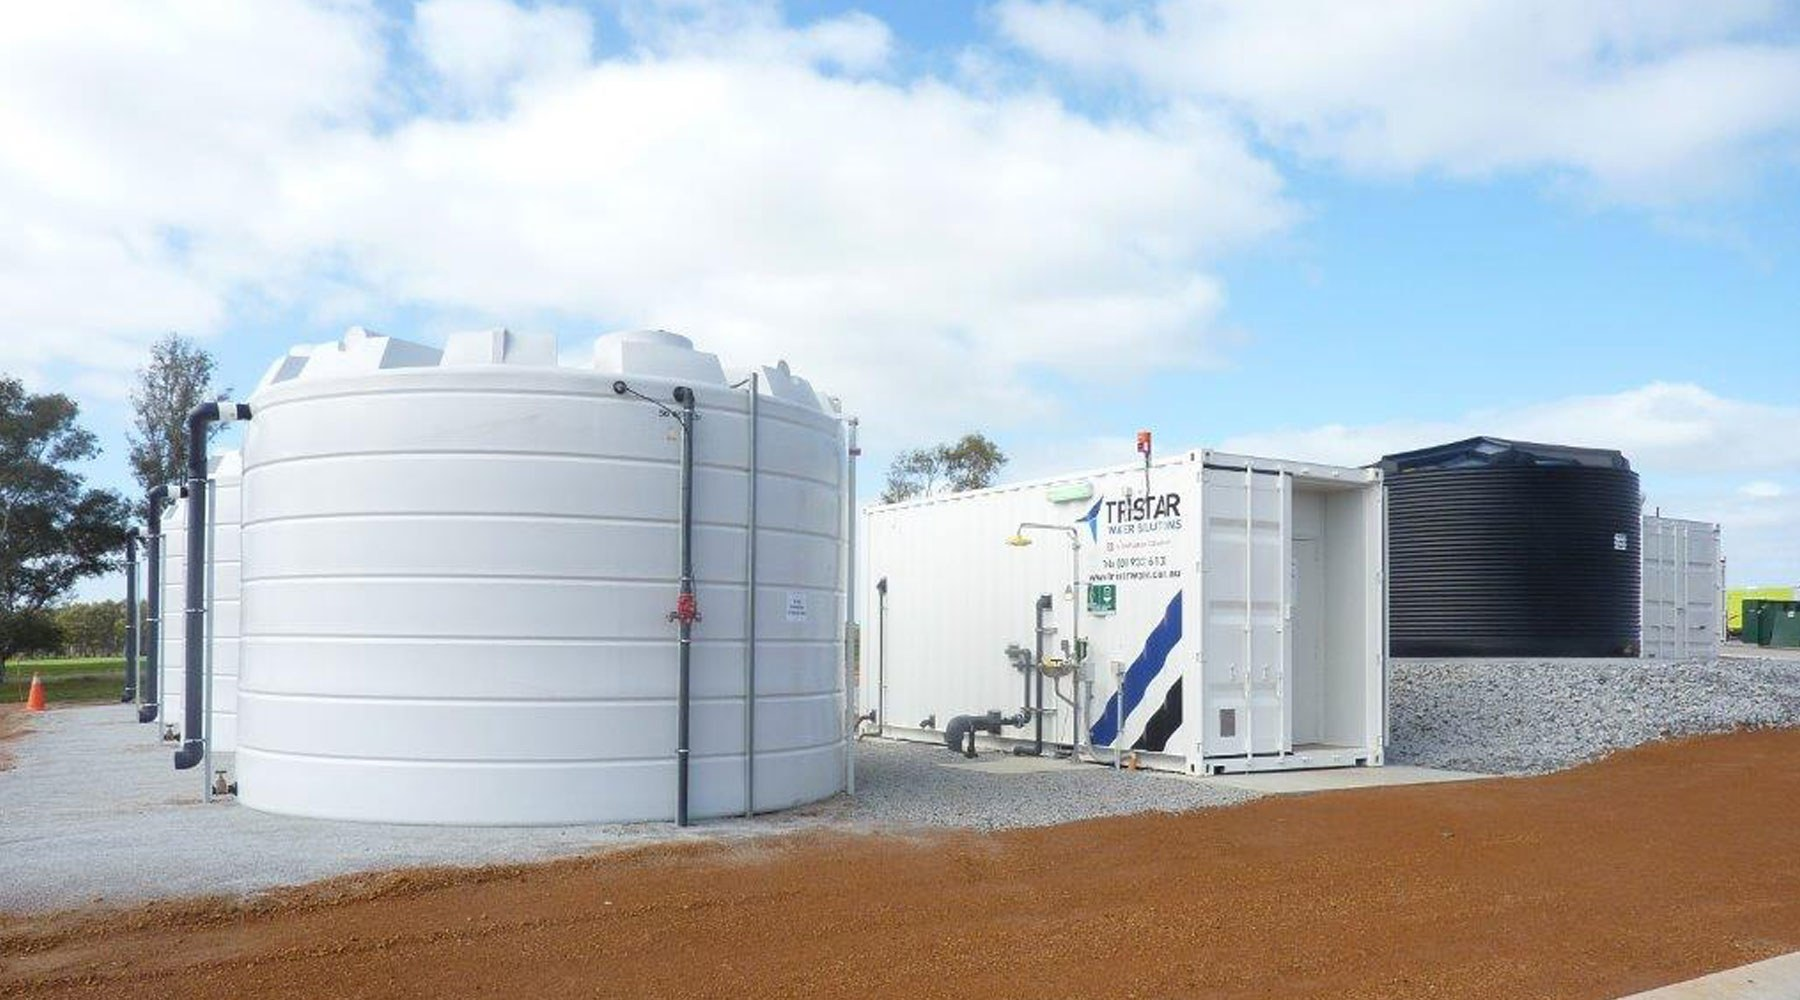 Tristar-branded water tanks and trailer